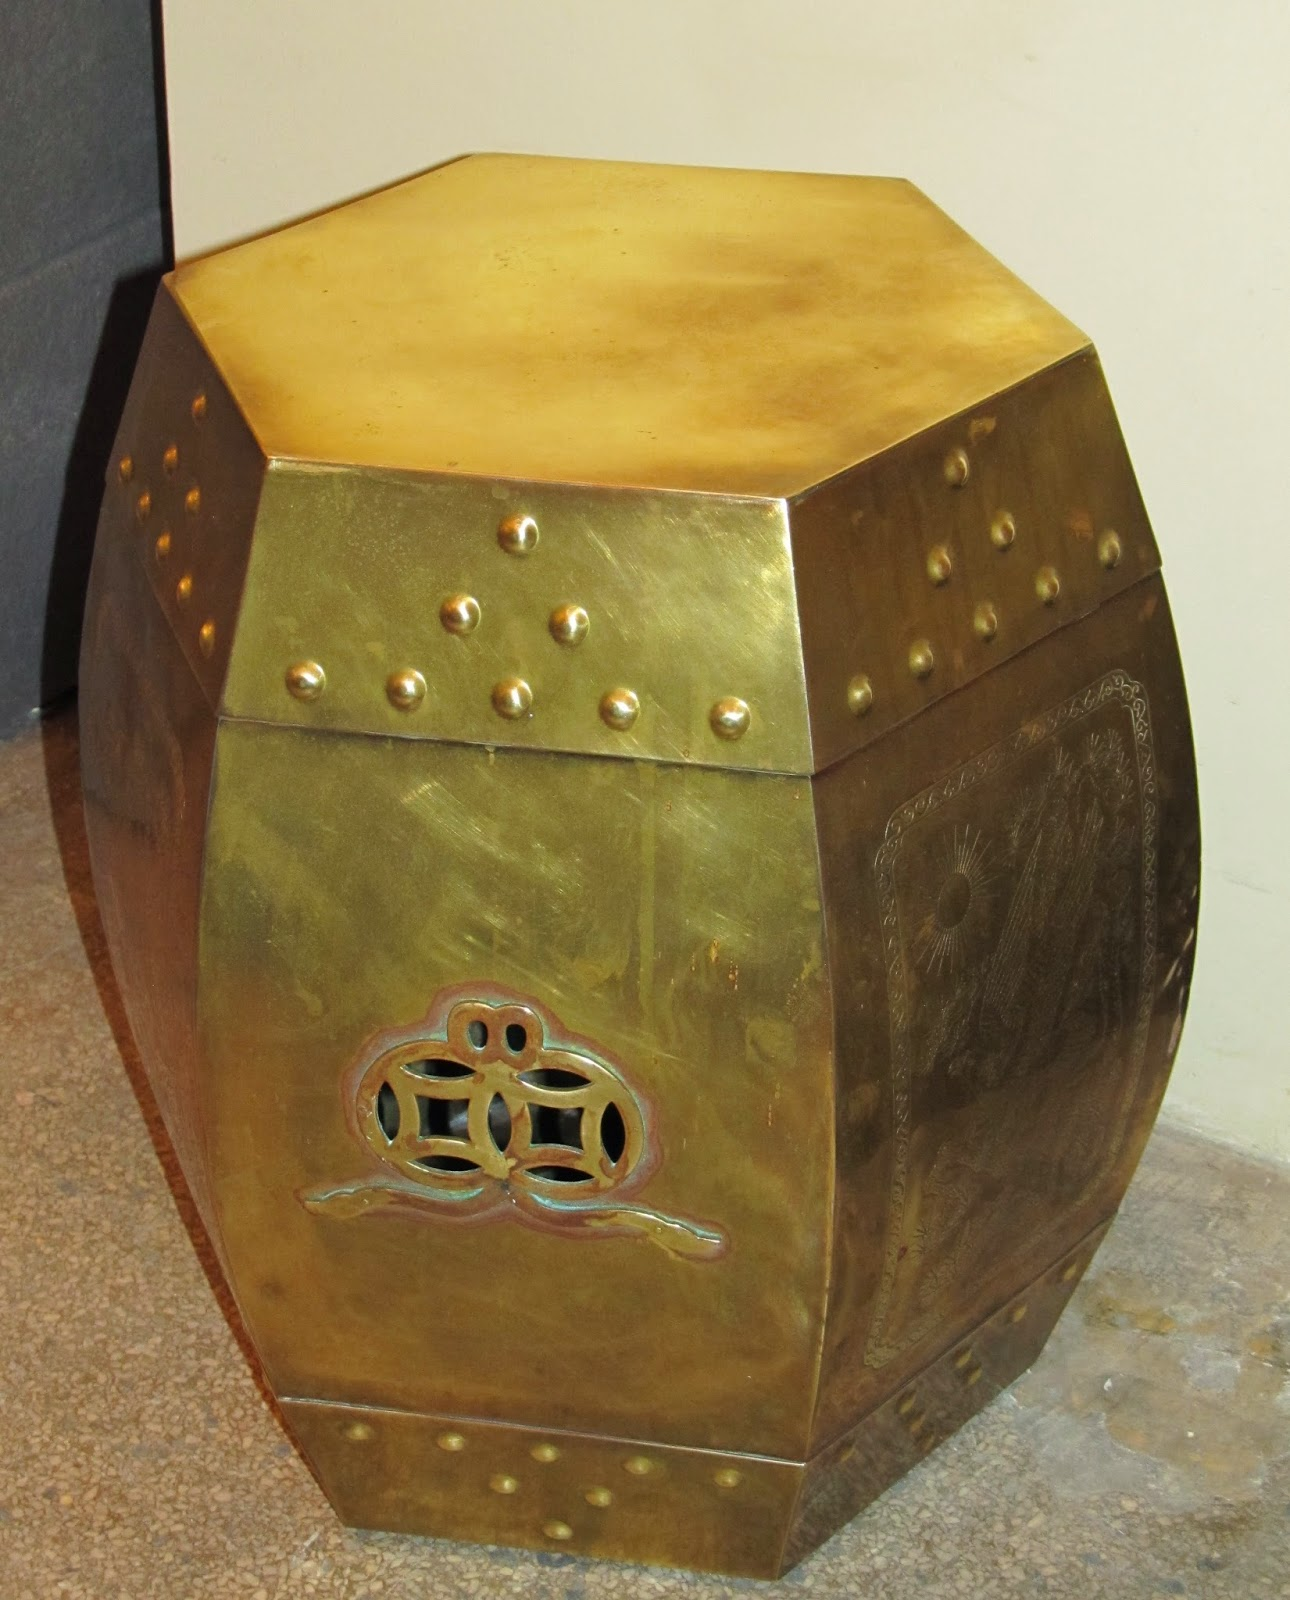 Vintage Brass Chinese Garden Stool for that  Hollywood Regency Look  & Era Antiques: Vintage Brass Chinese Garden Stool for that ... islam-shia.org